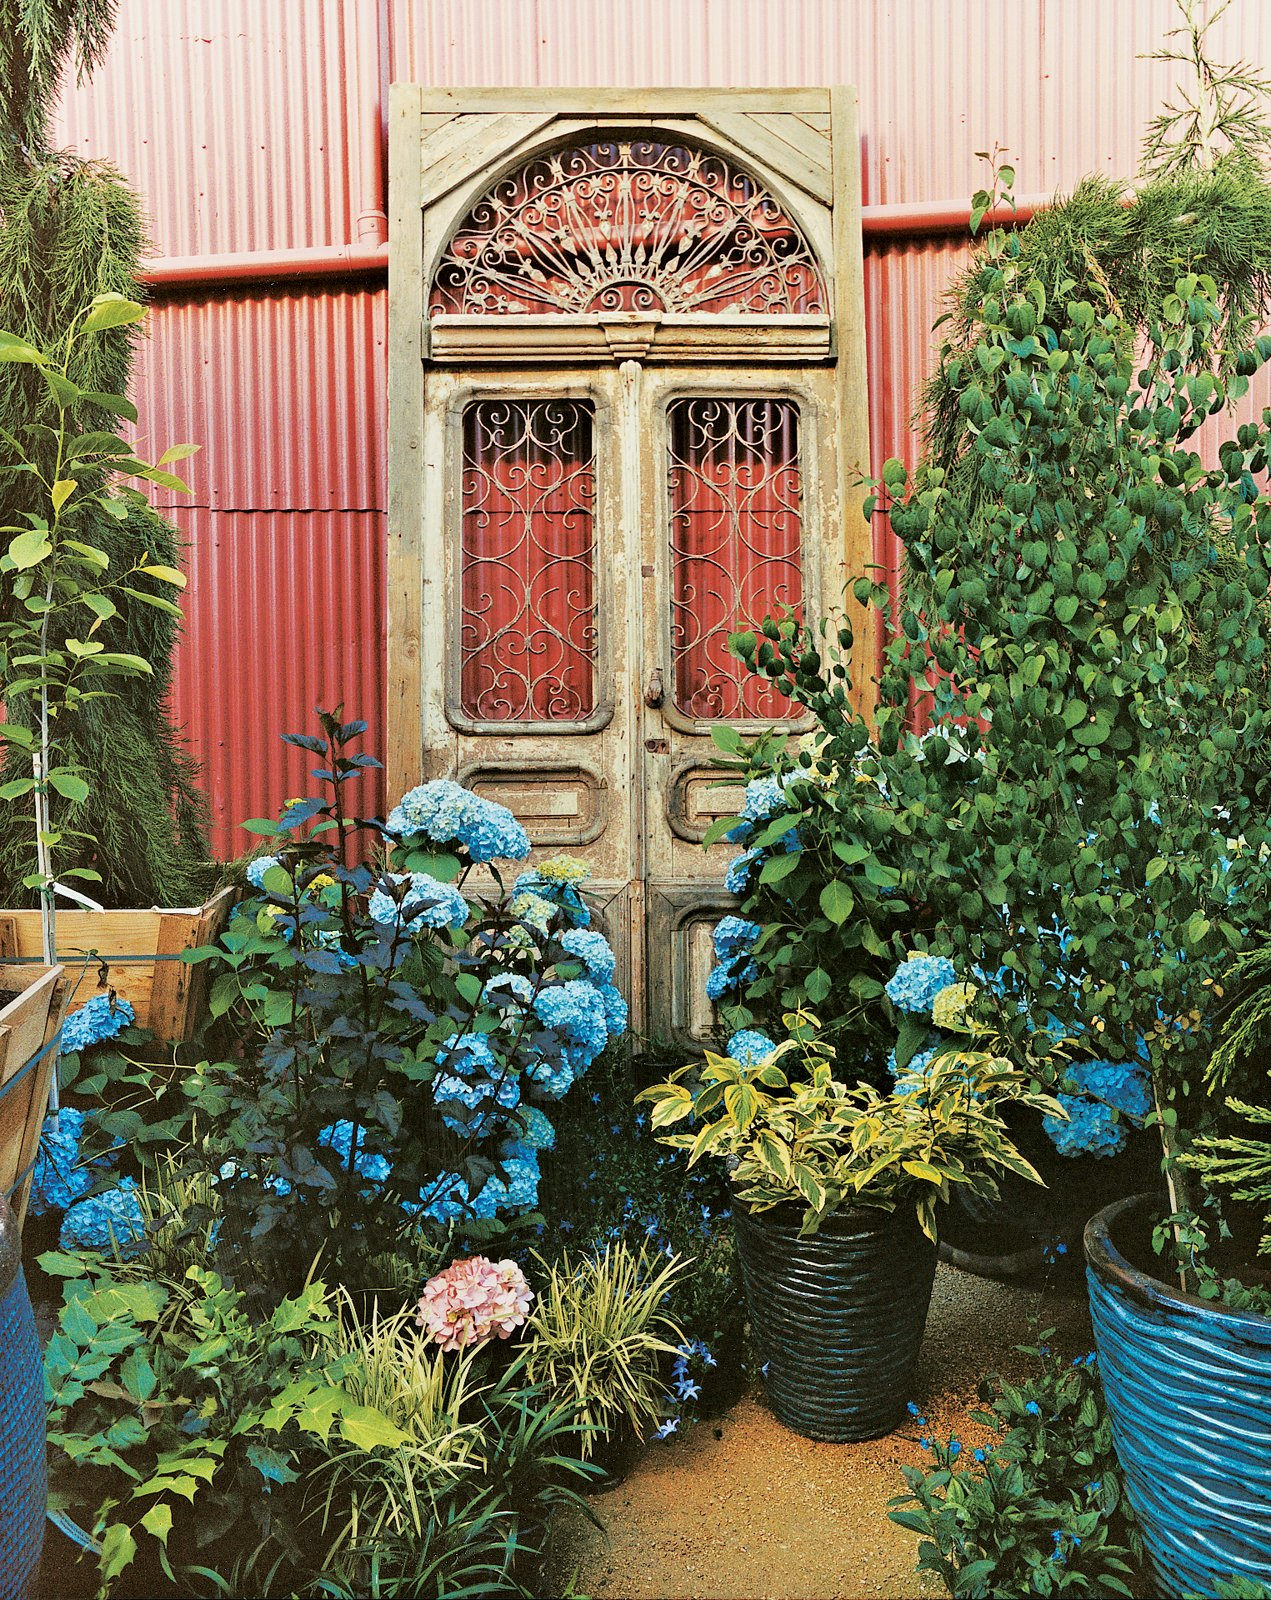 Outdoor and Gardens The intricate retail space is adorned with relics like this ornate door. Corrugated steel panels clad the building's exterior.  Photo 6 of 6 in Fawning Over Flora